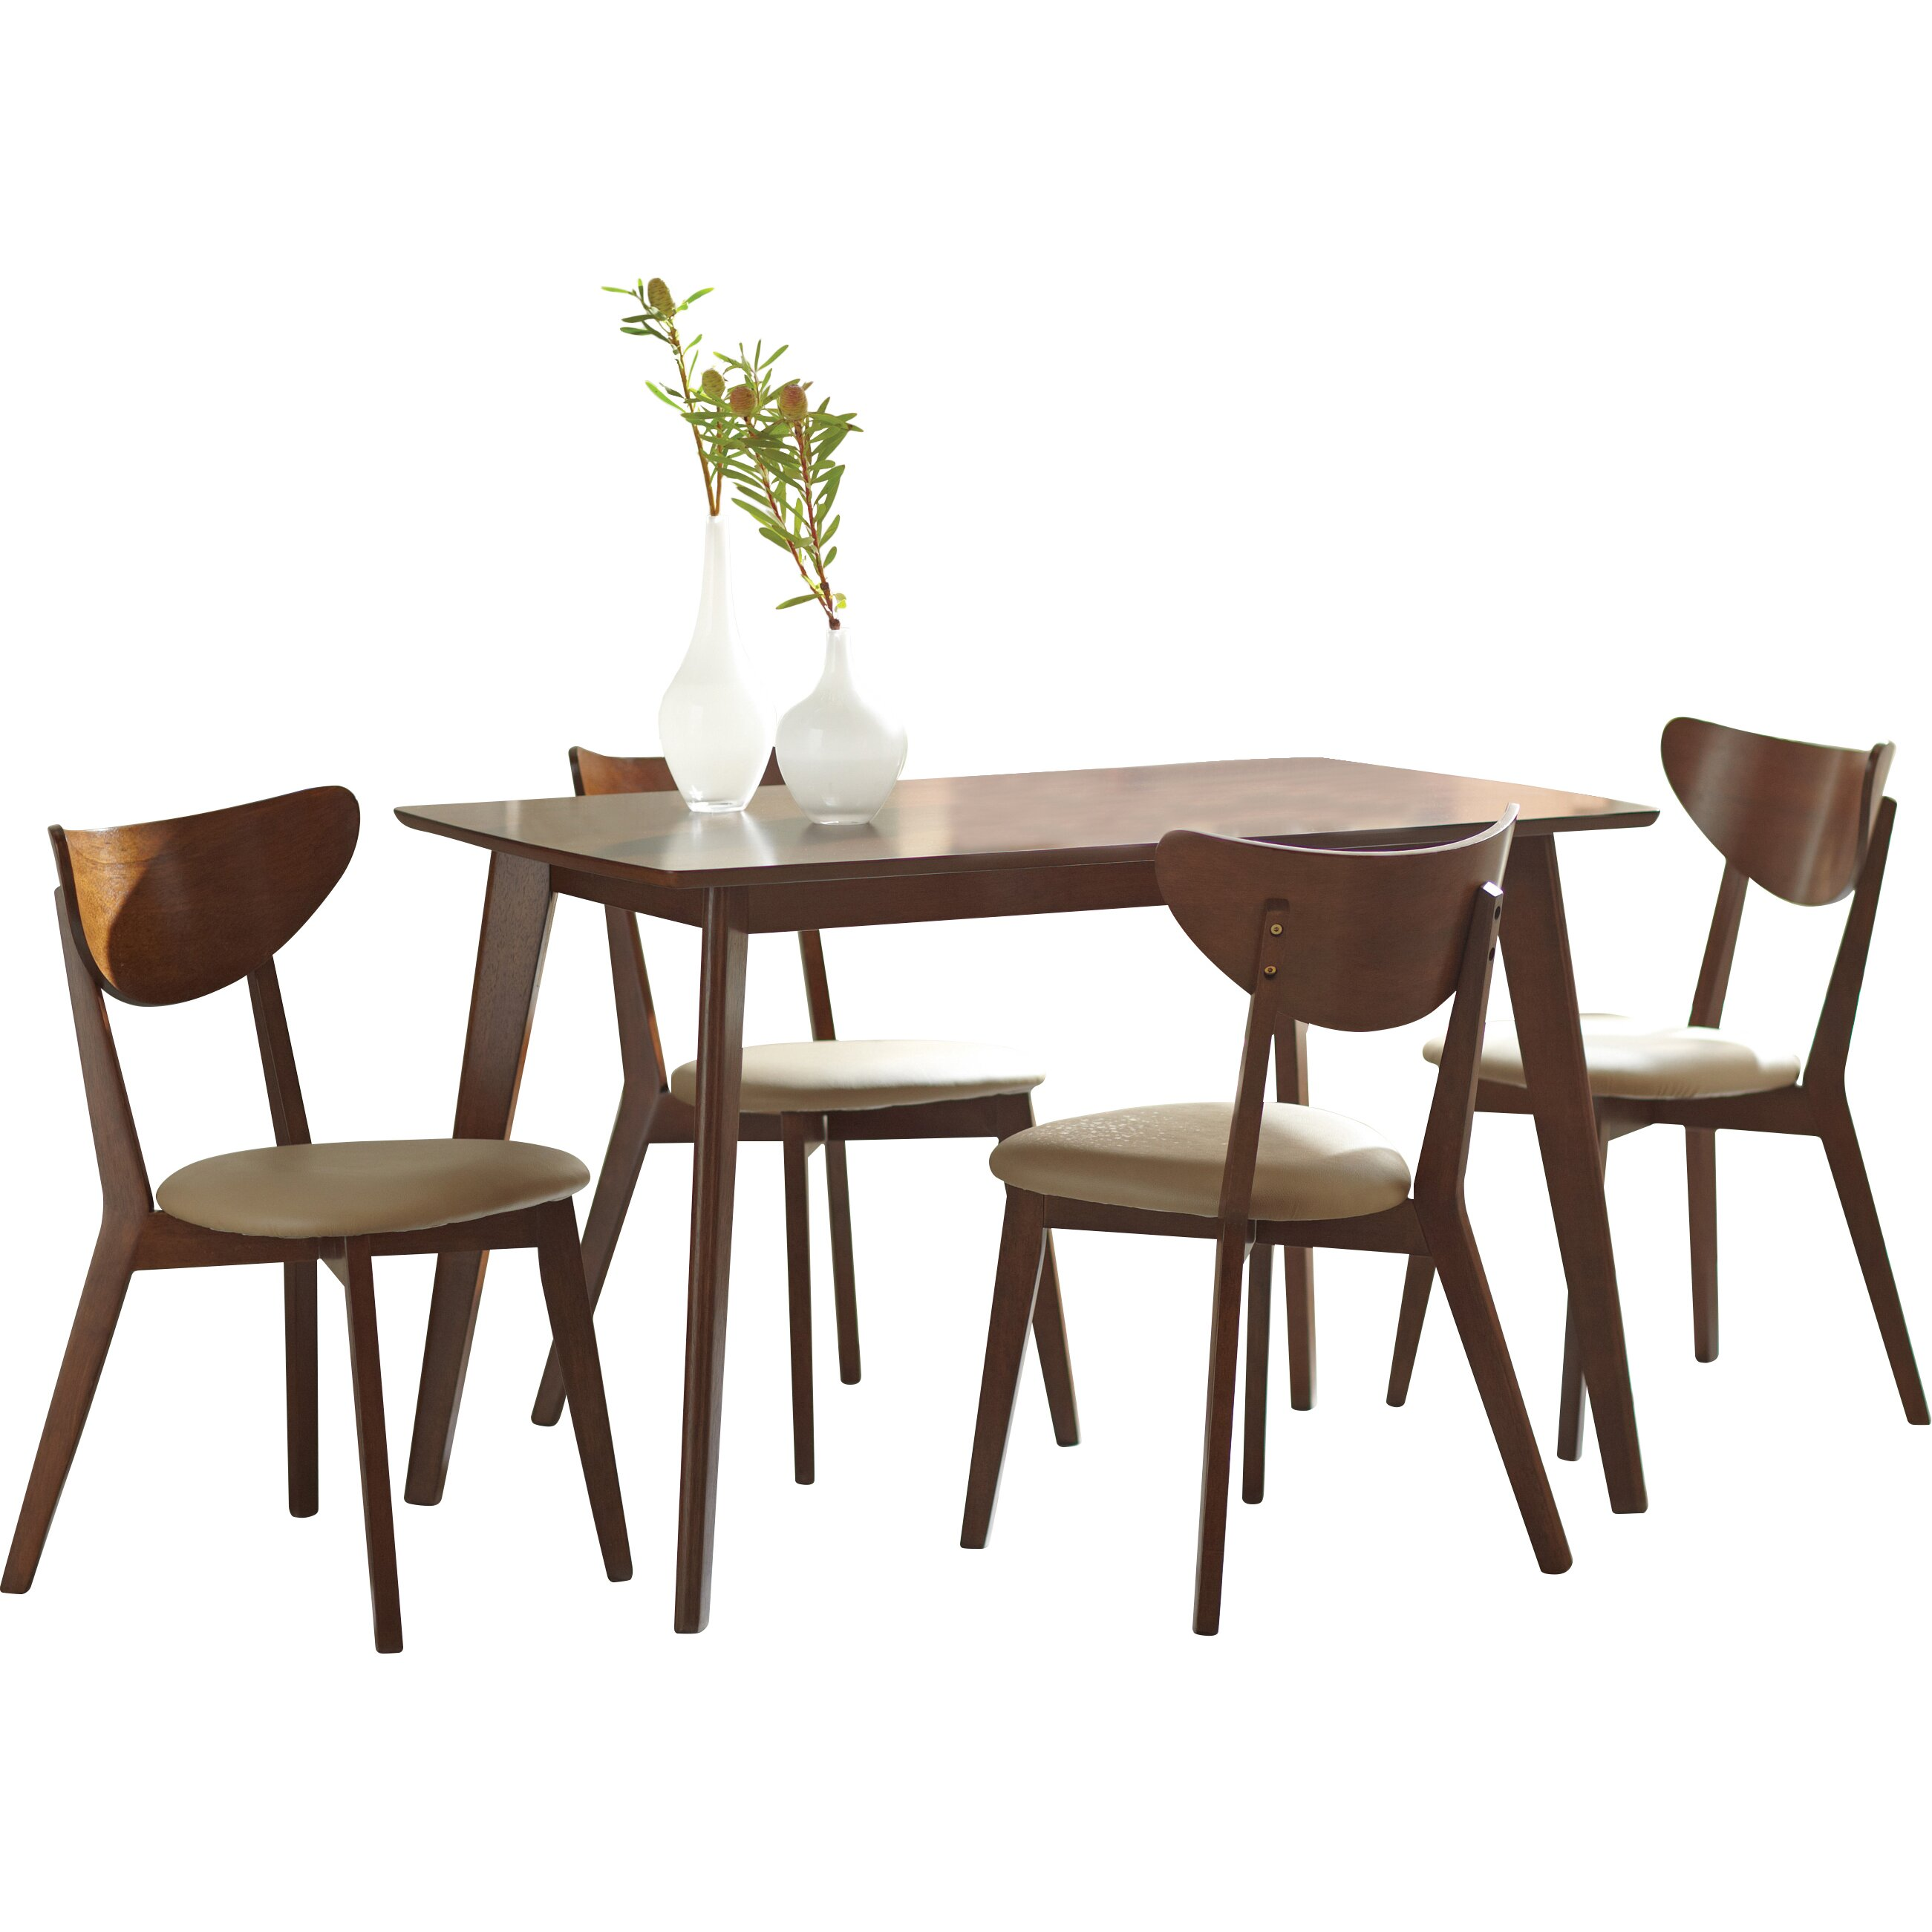 Wildon home kersey dining table reviews wayfair for Wildon home dining